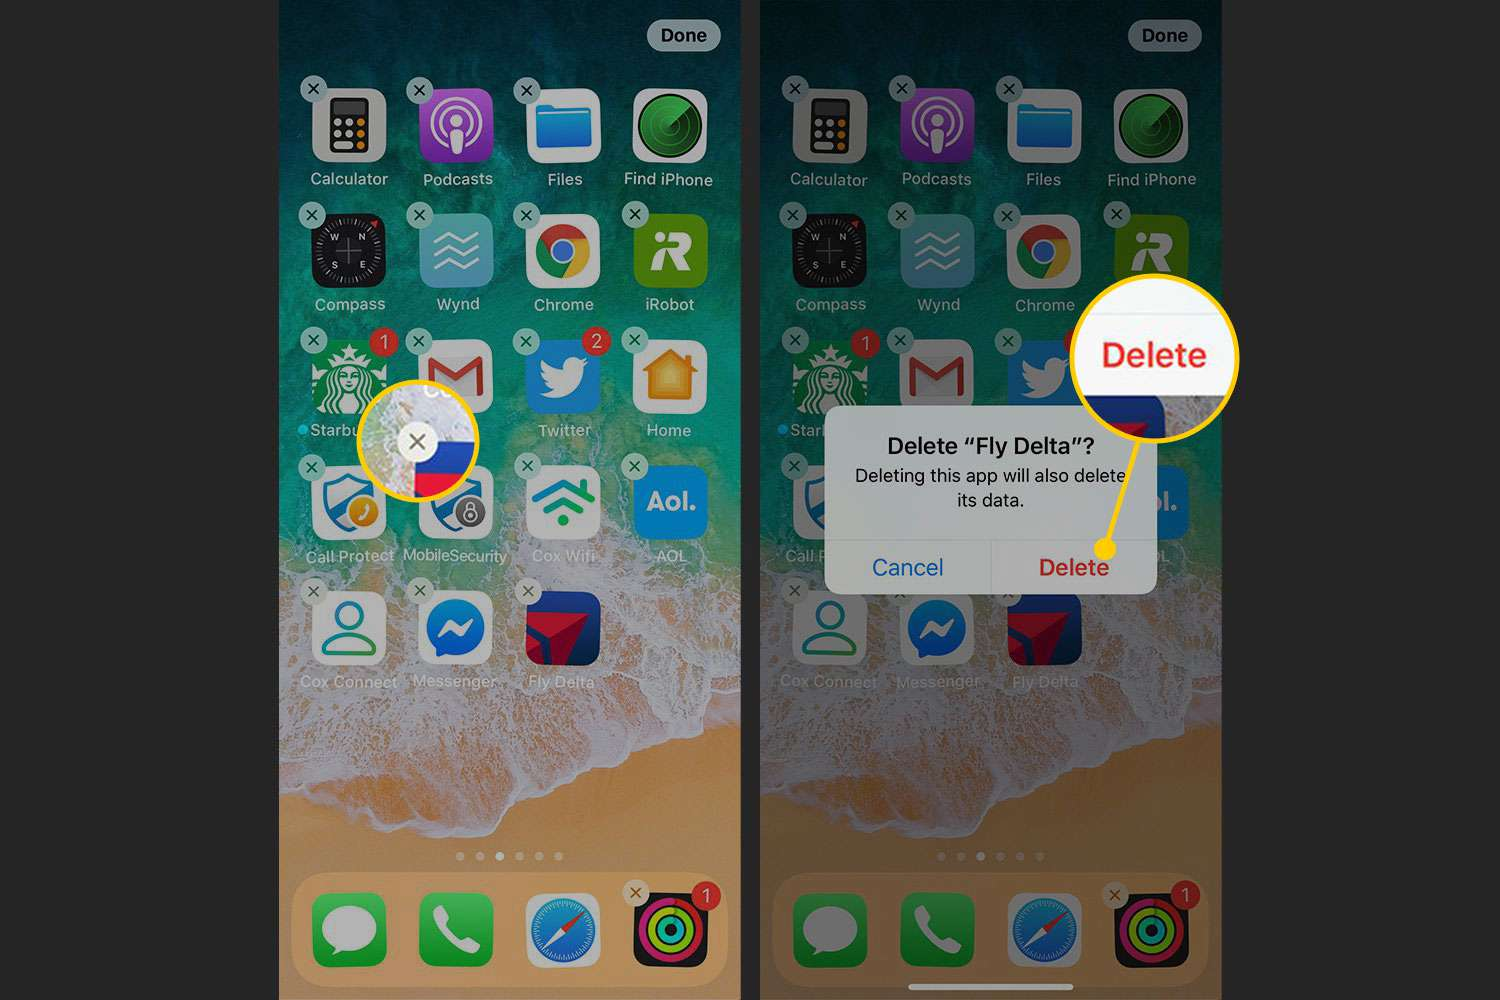 Deleting an app from the home screen on an iPhone